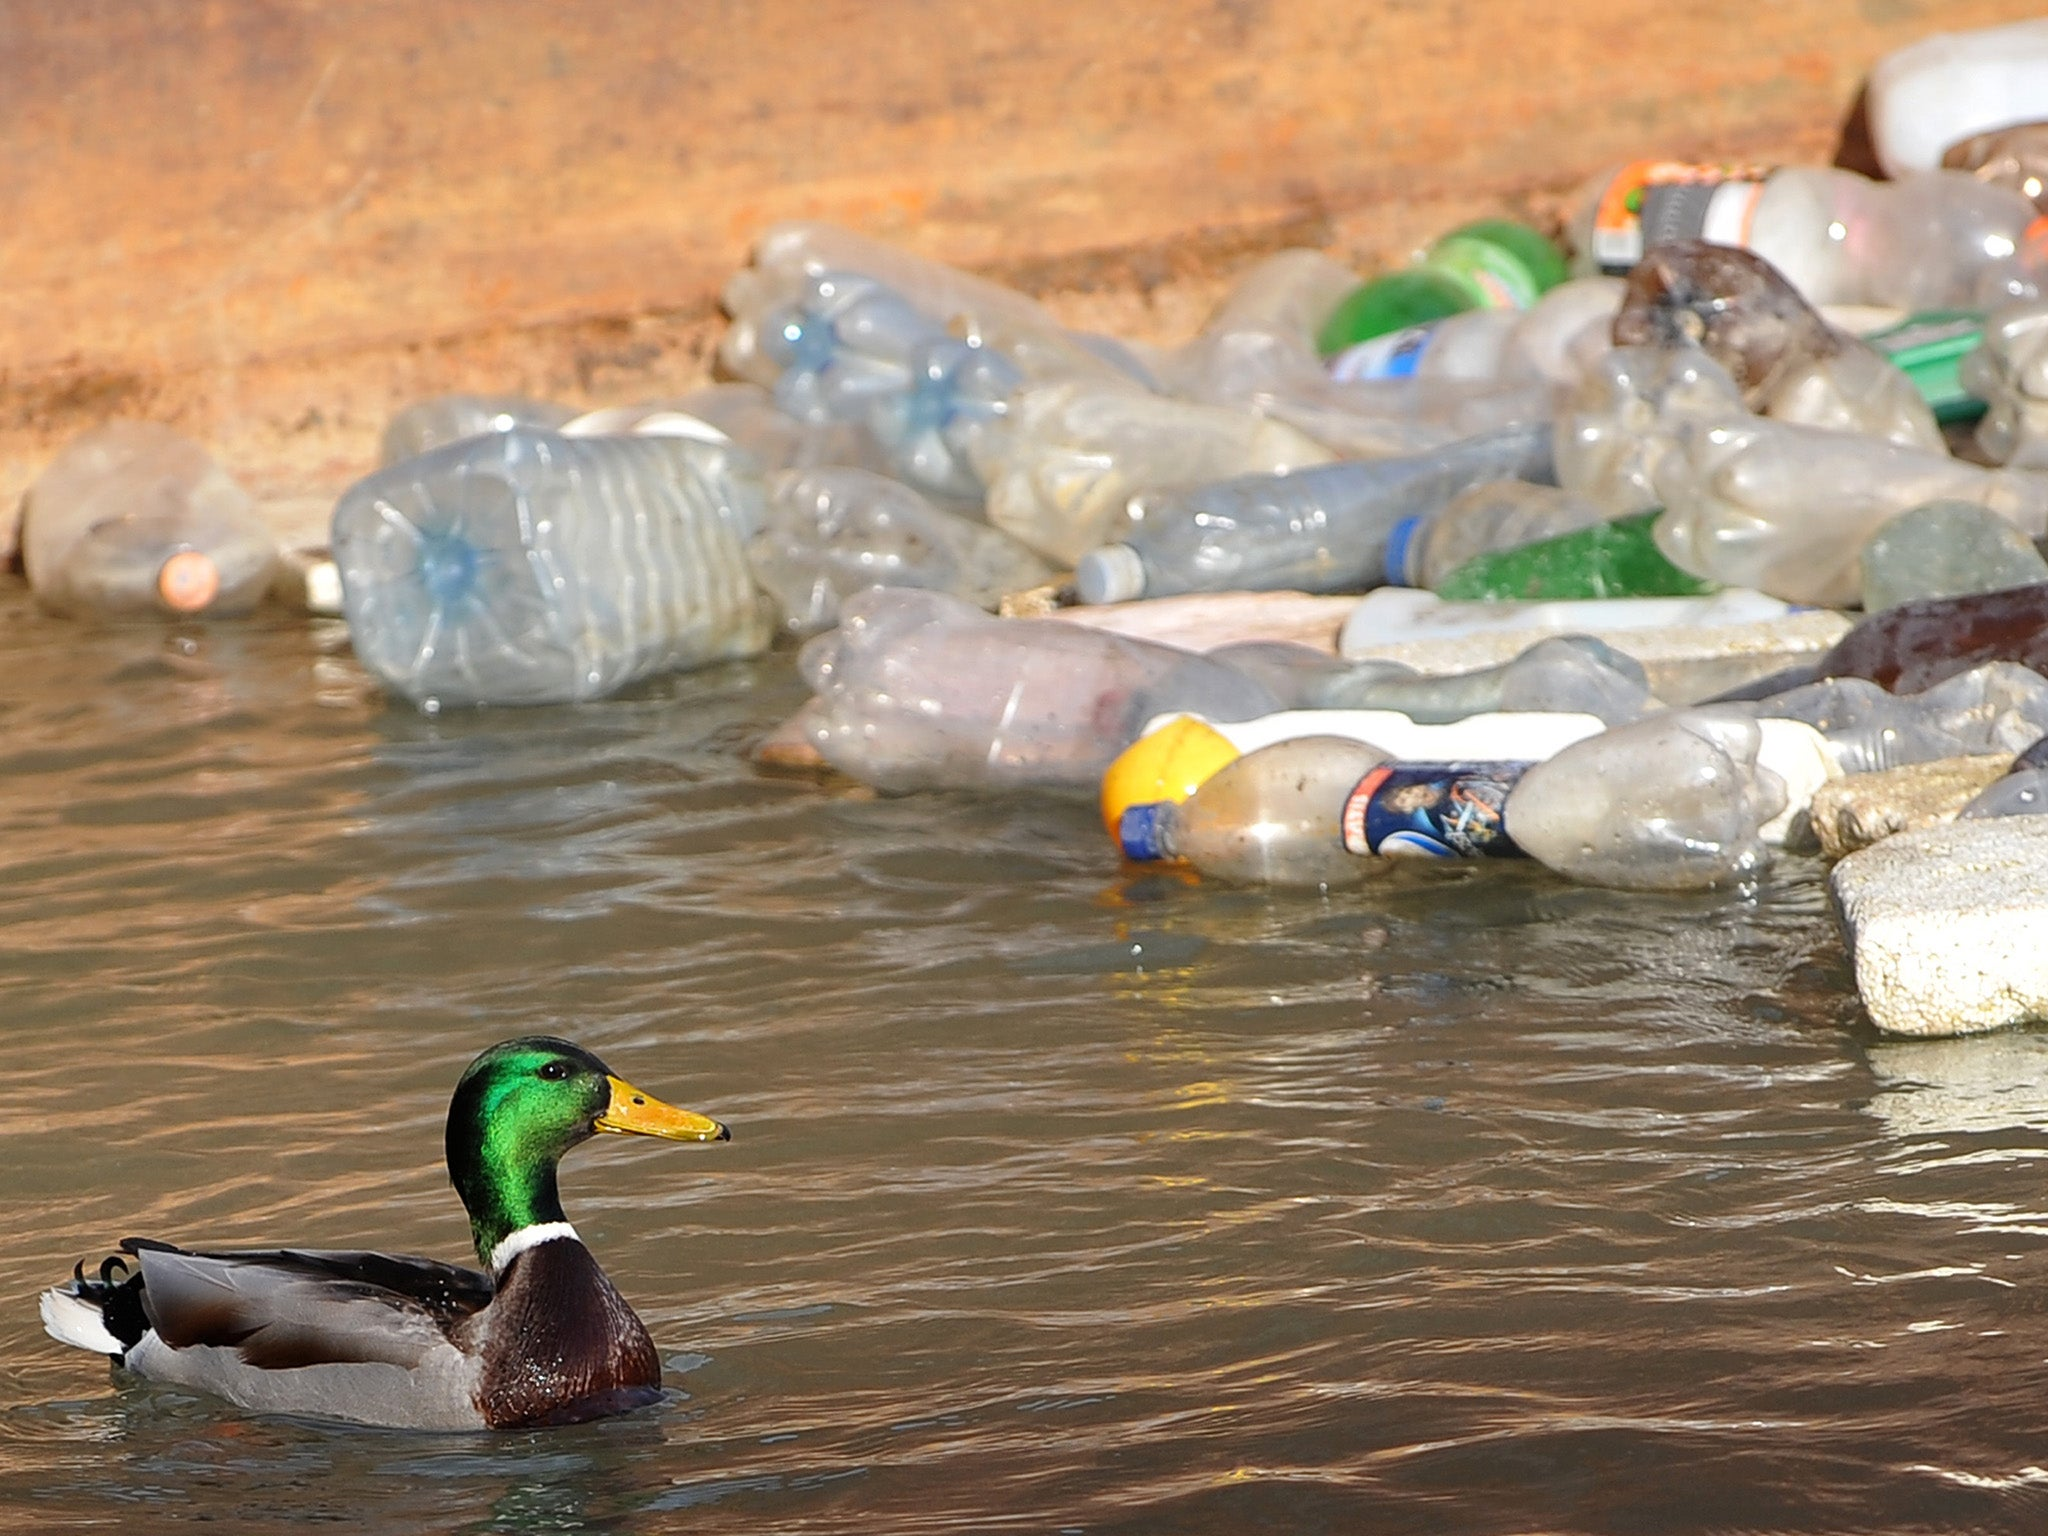 how to cut into plastic bottles